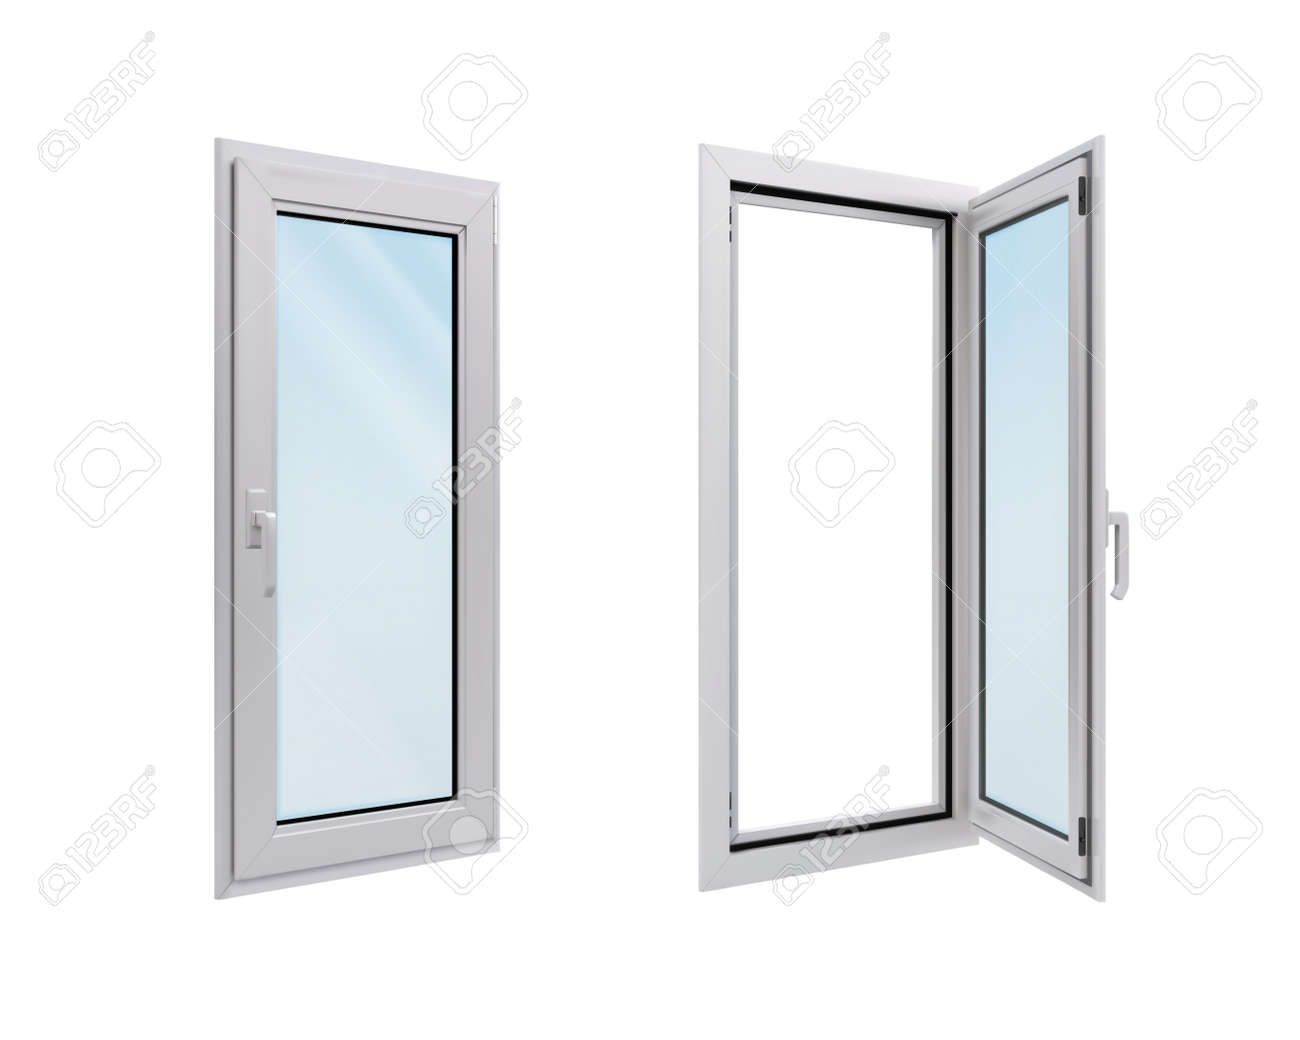 White narrow window in side view on a transparent background. vector illustration - 168415828